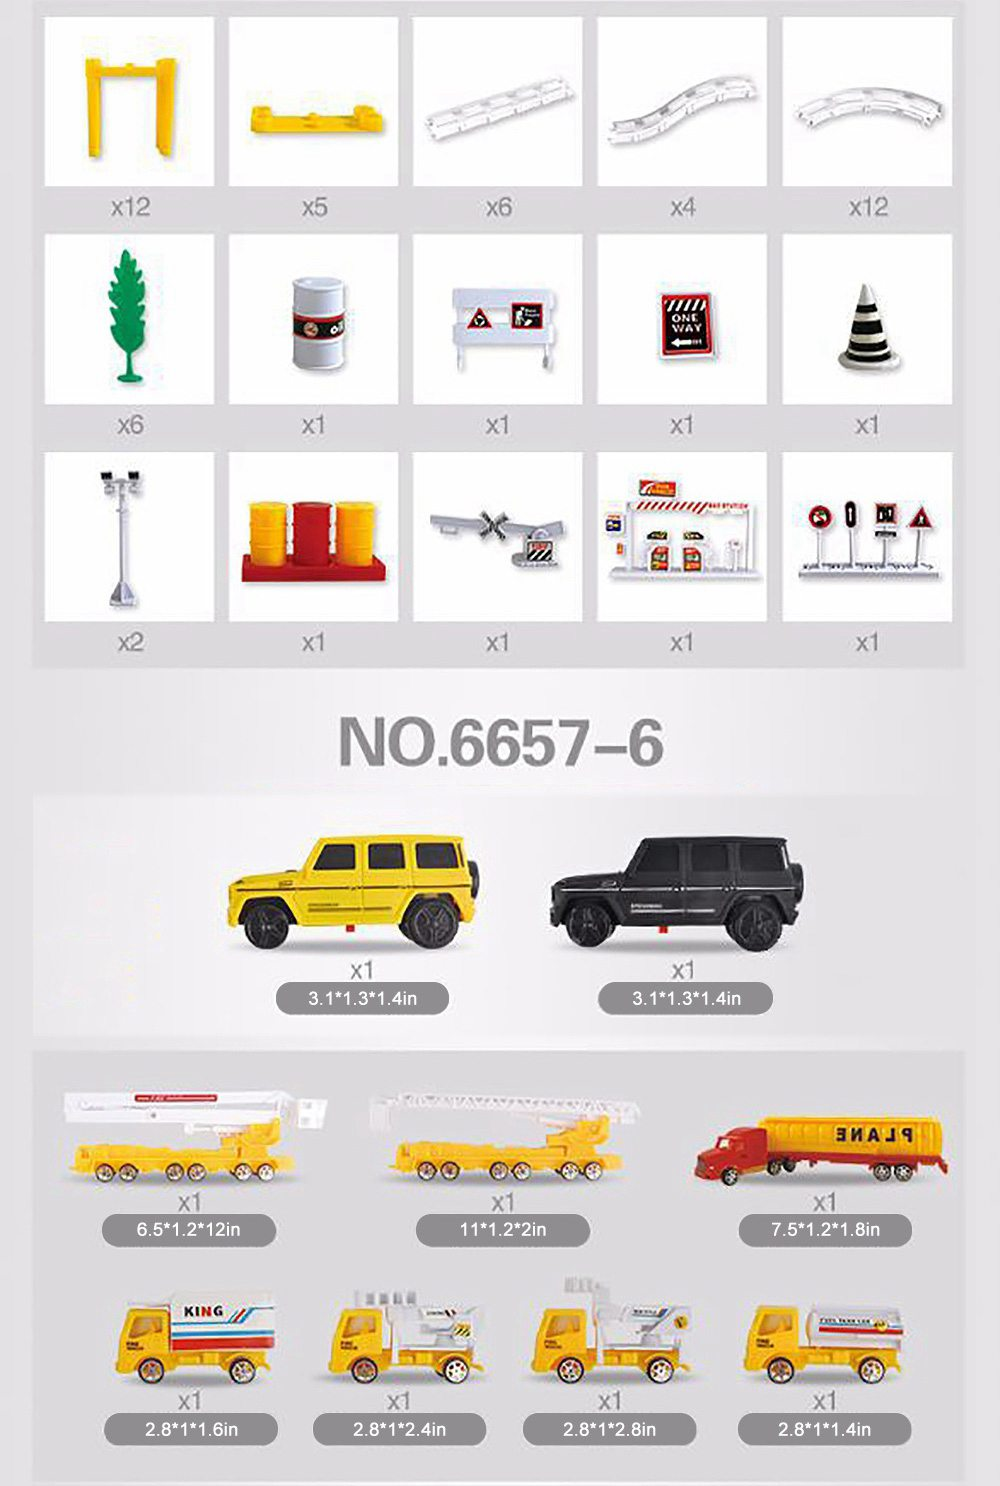 Simulation Model Police Car for Children & Kids, Electric Rail Car Toy Hovering Car Rail Track for 4 – 6 Years Old Boy, Engineering Series Toy 9